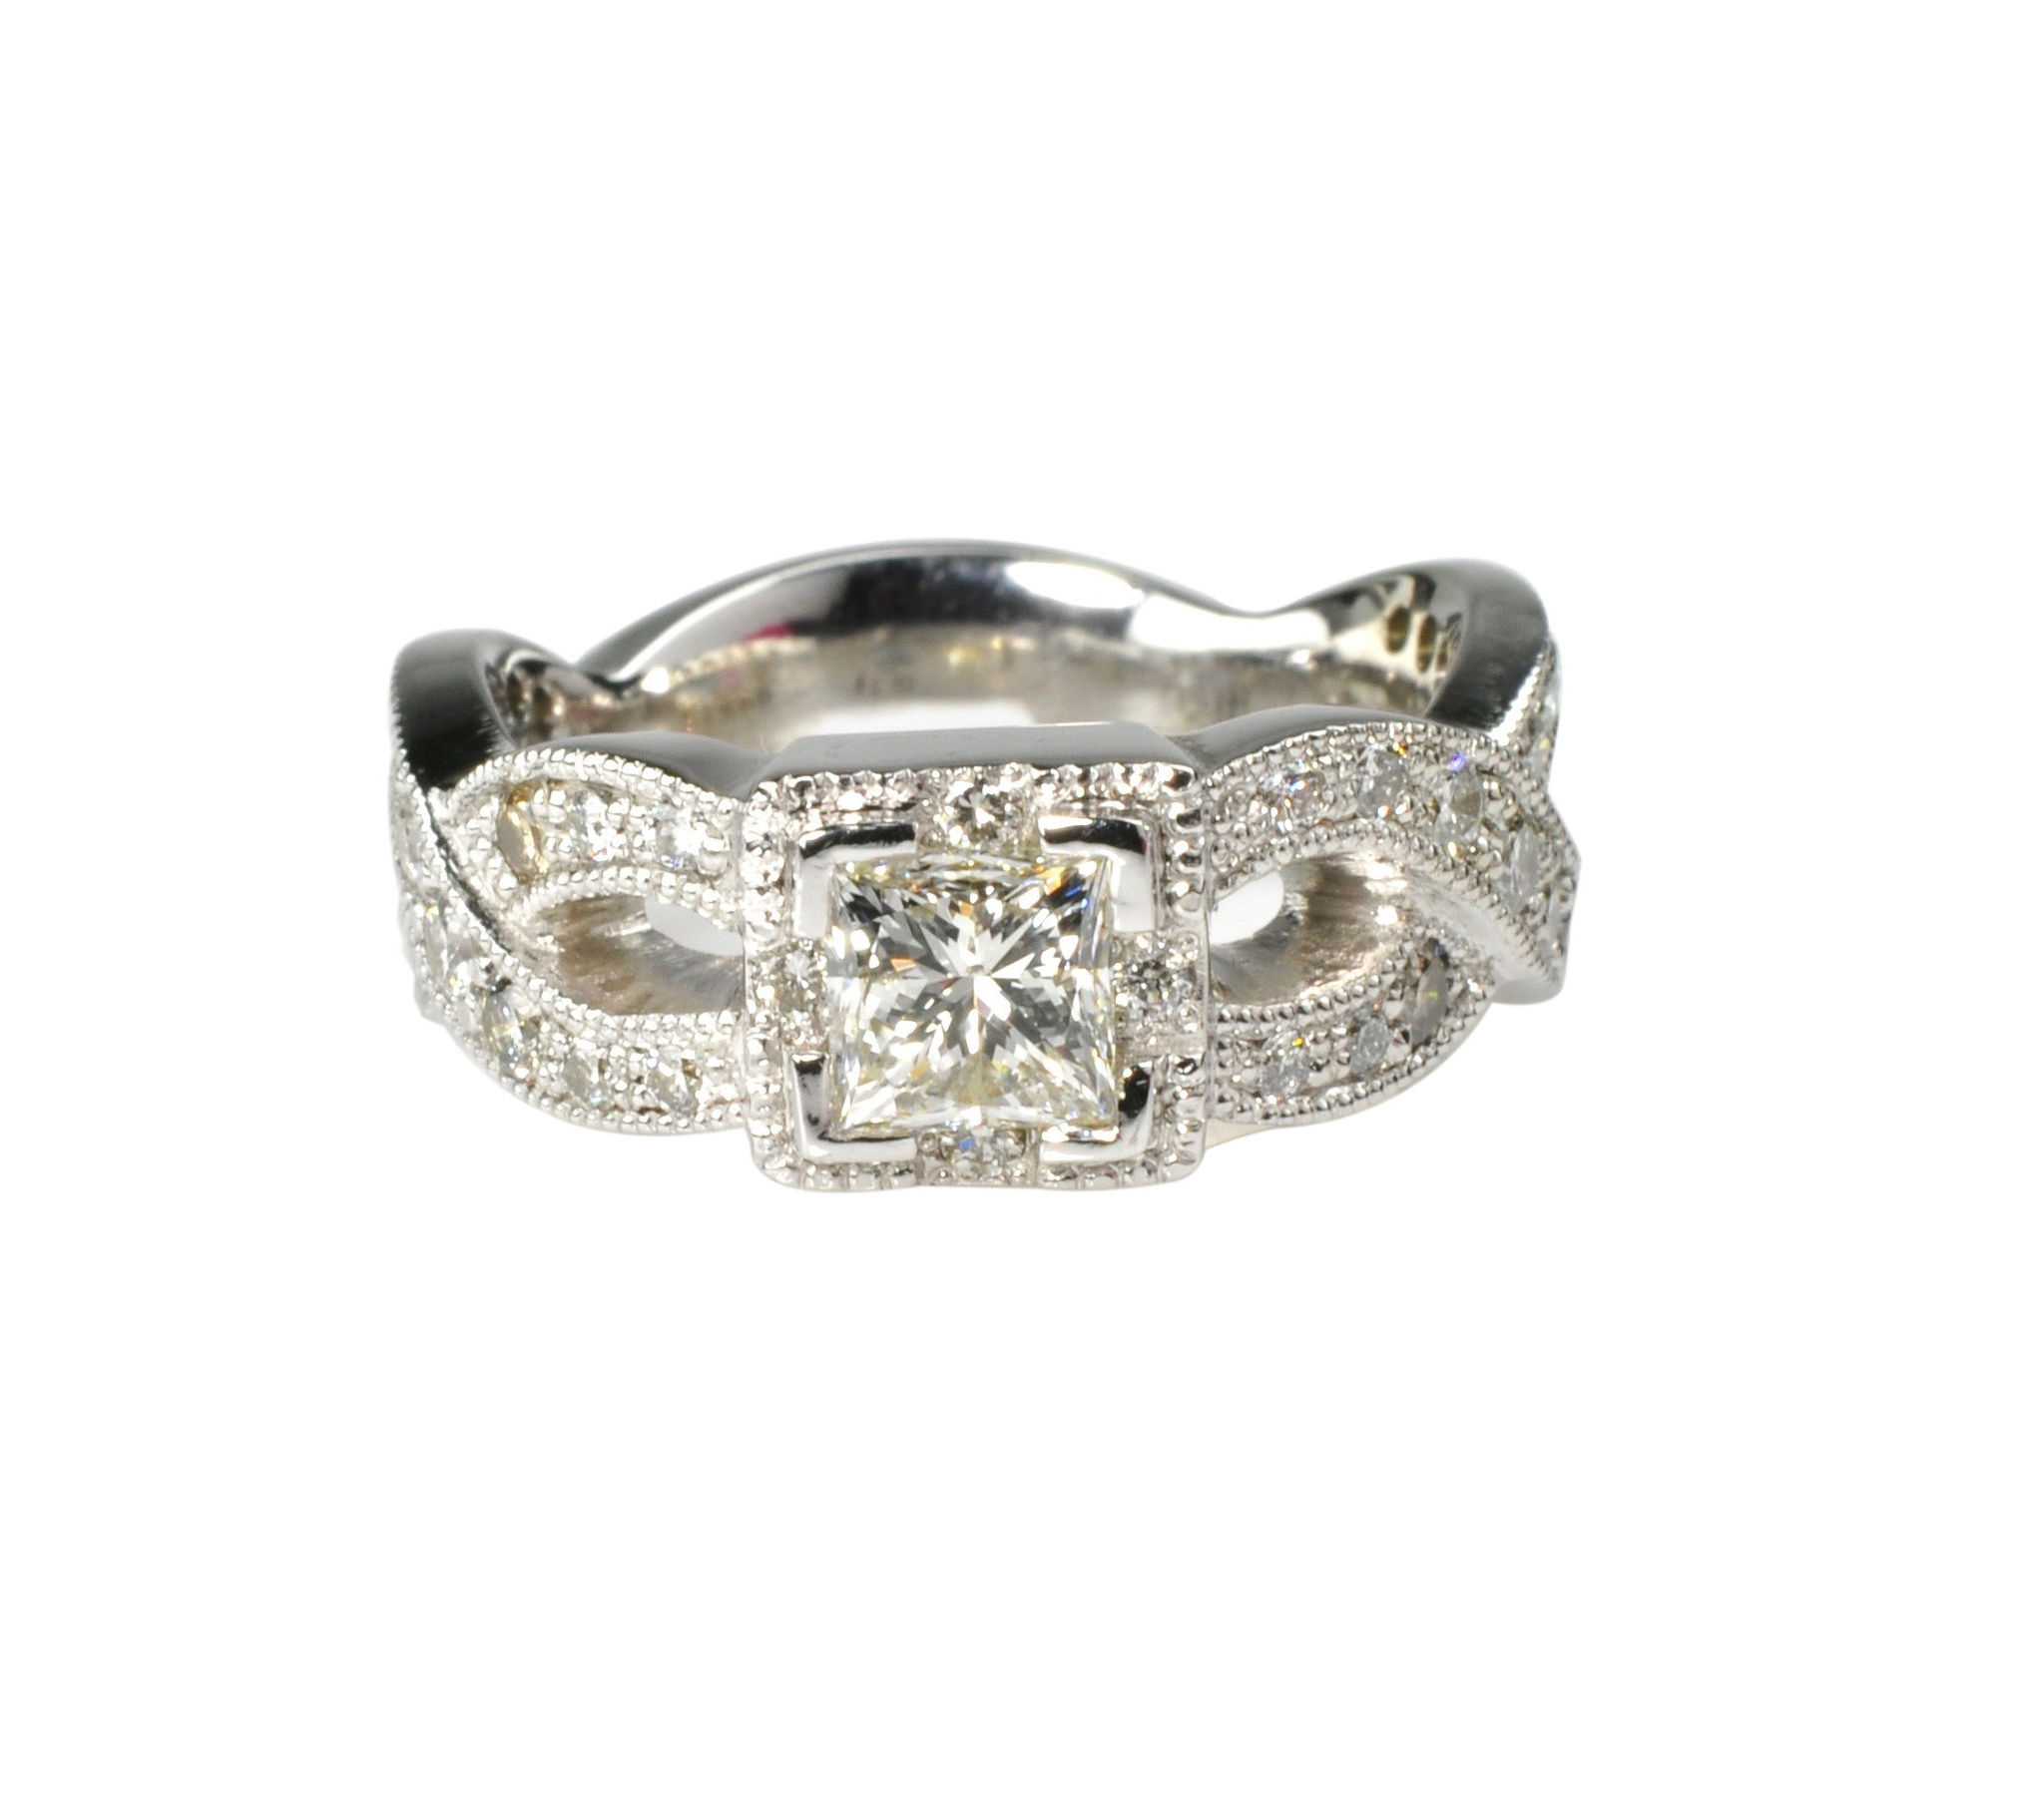 14k White Gold Princess Cut Ring with Diamonds